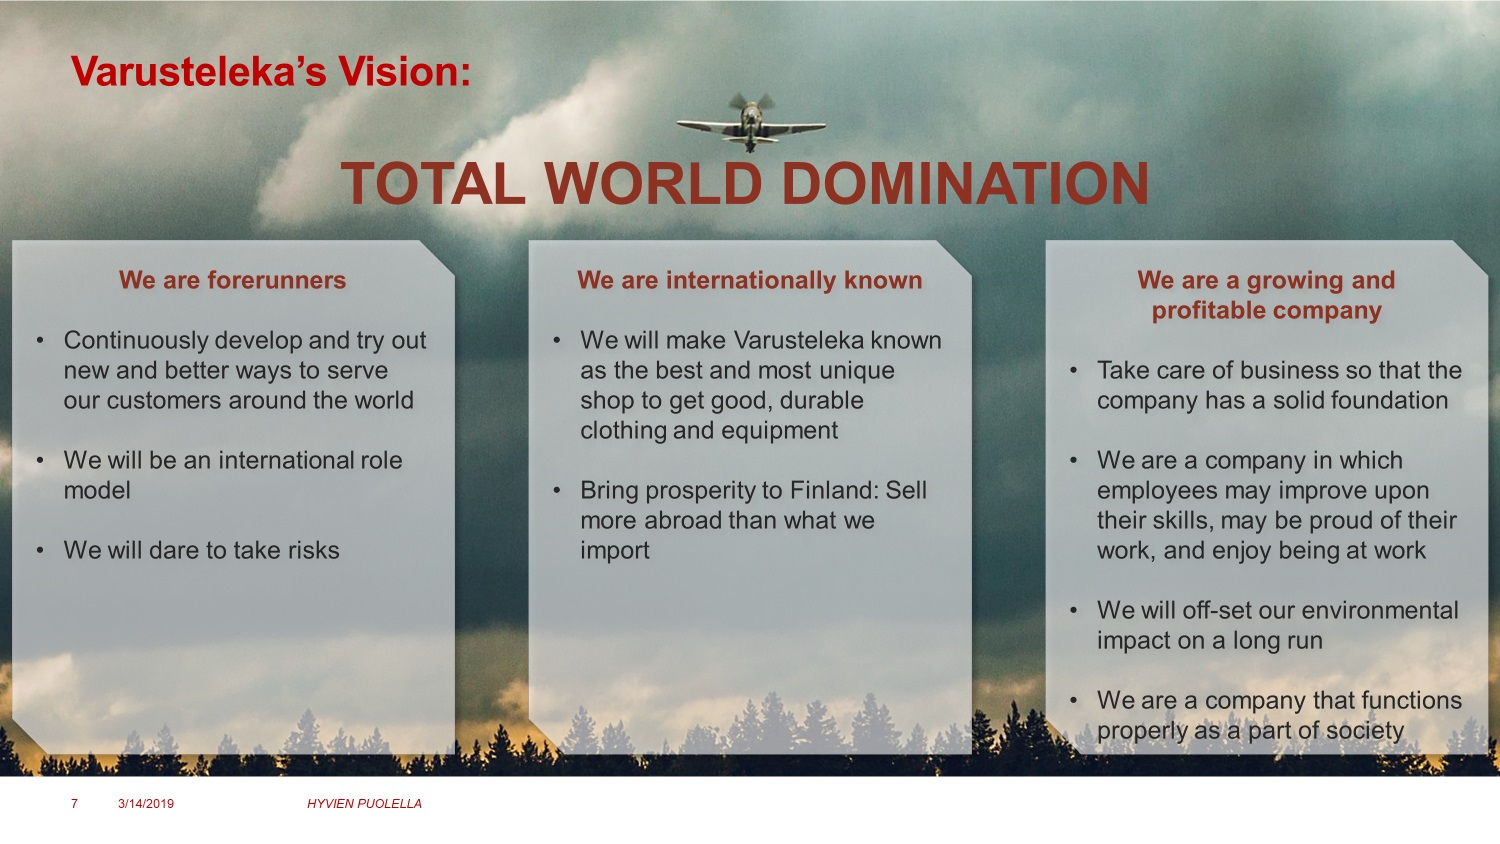 Varusteleka's vision: Total World Domination. We are forerunners, we are internationally known, we are a growing and profitable company.